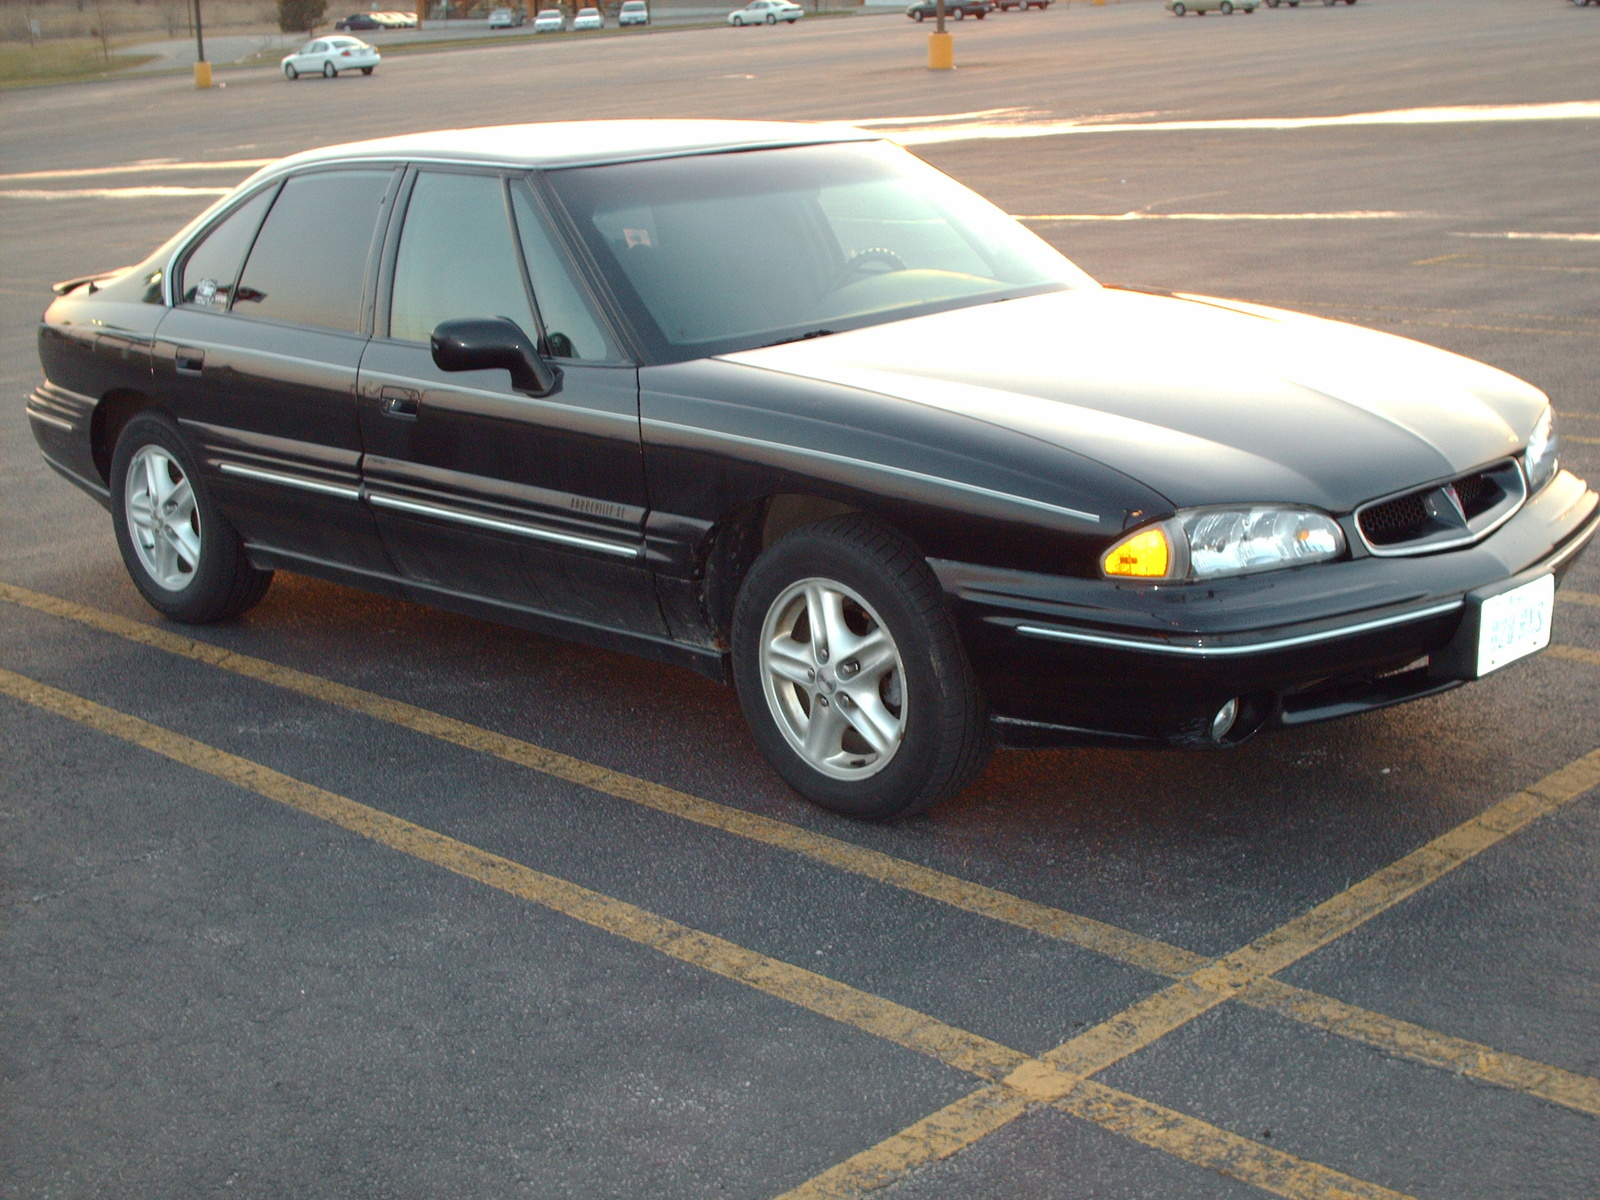 1998 Pontiac Bonneville 4 Dr SE Sedan picture